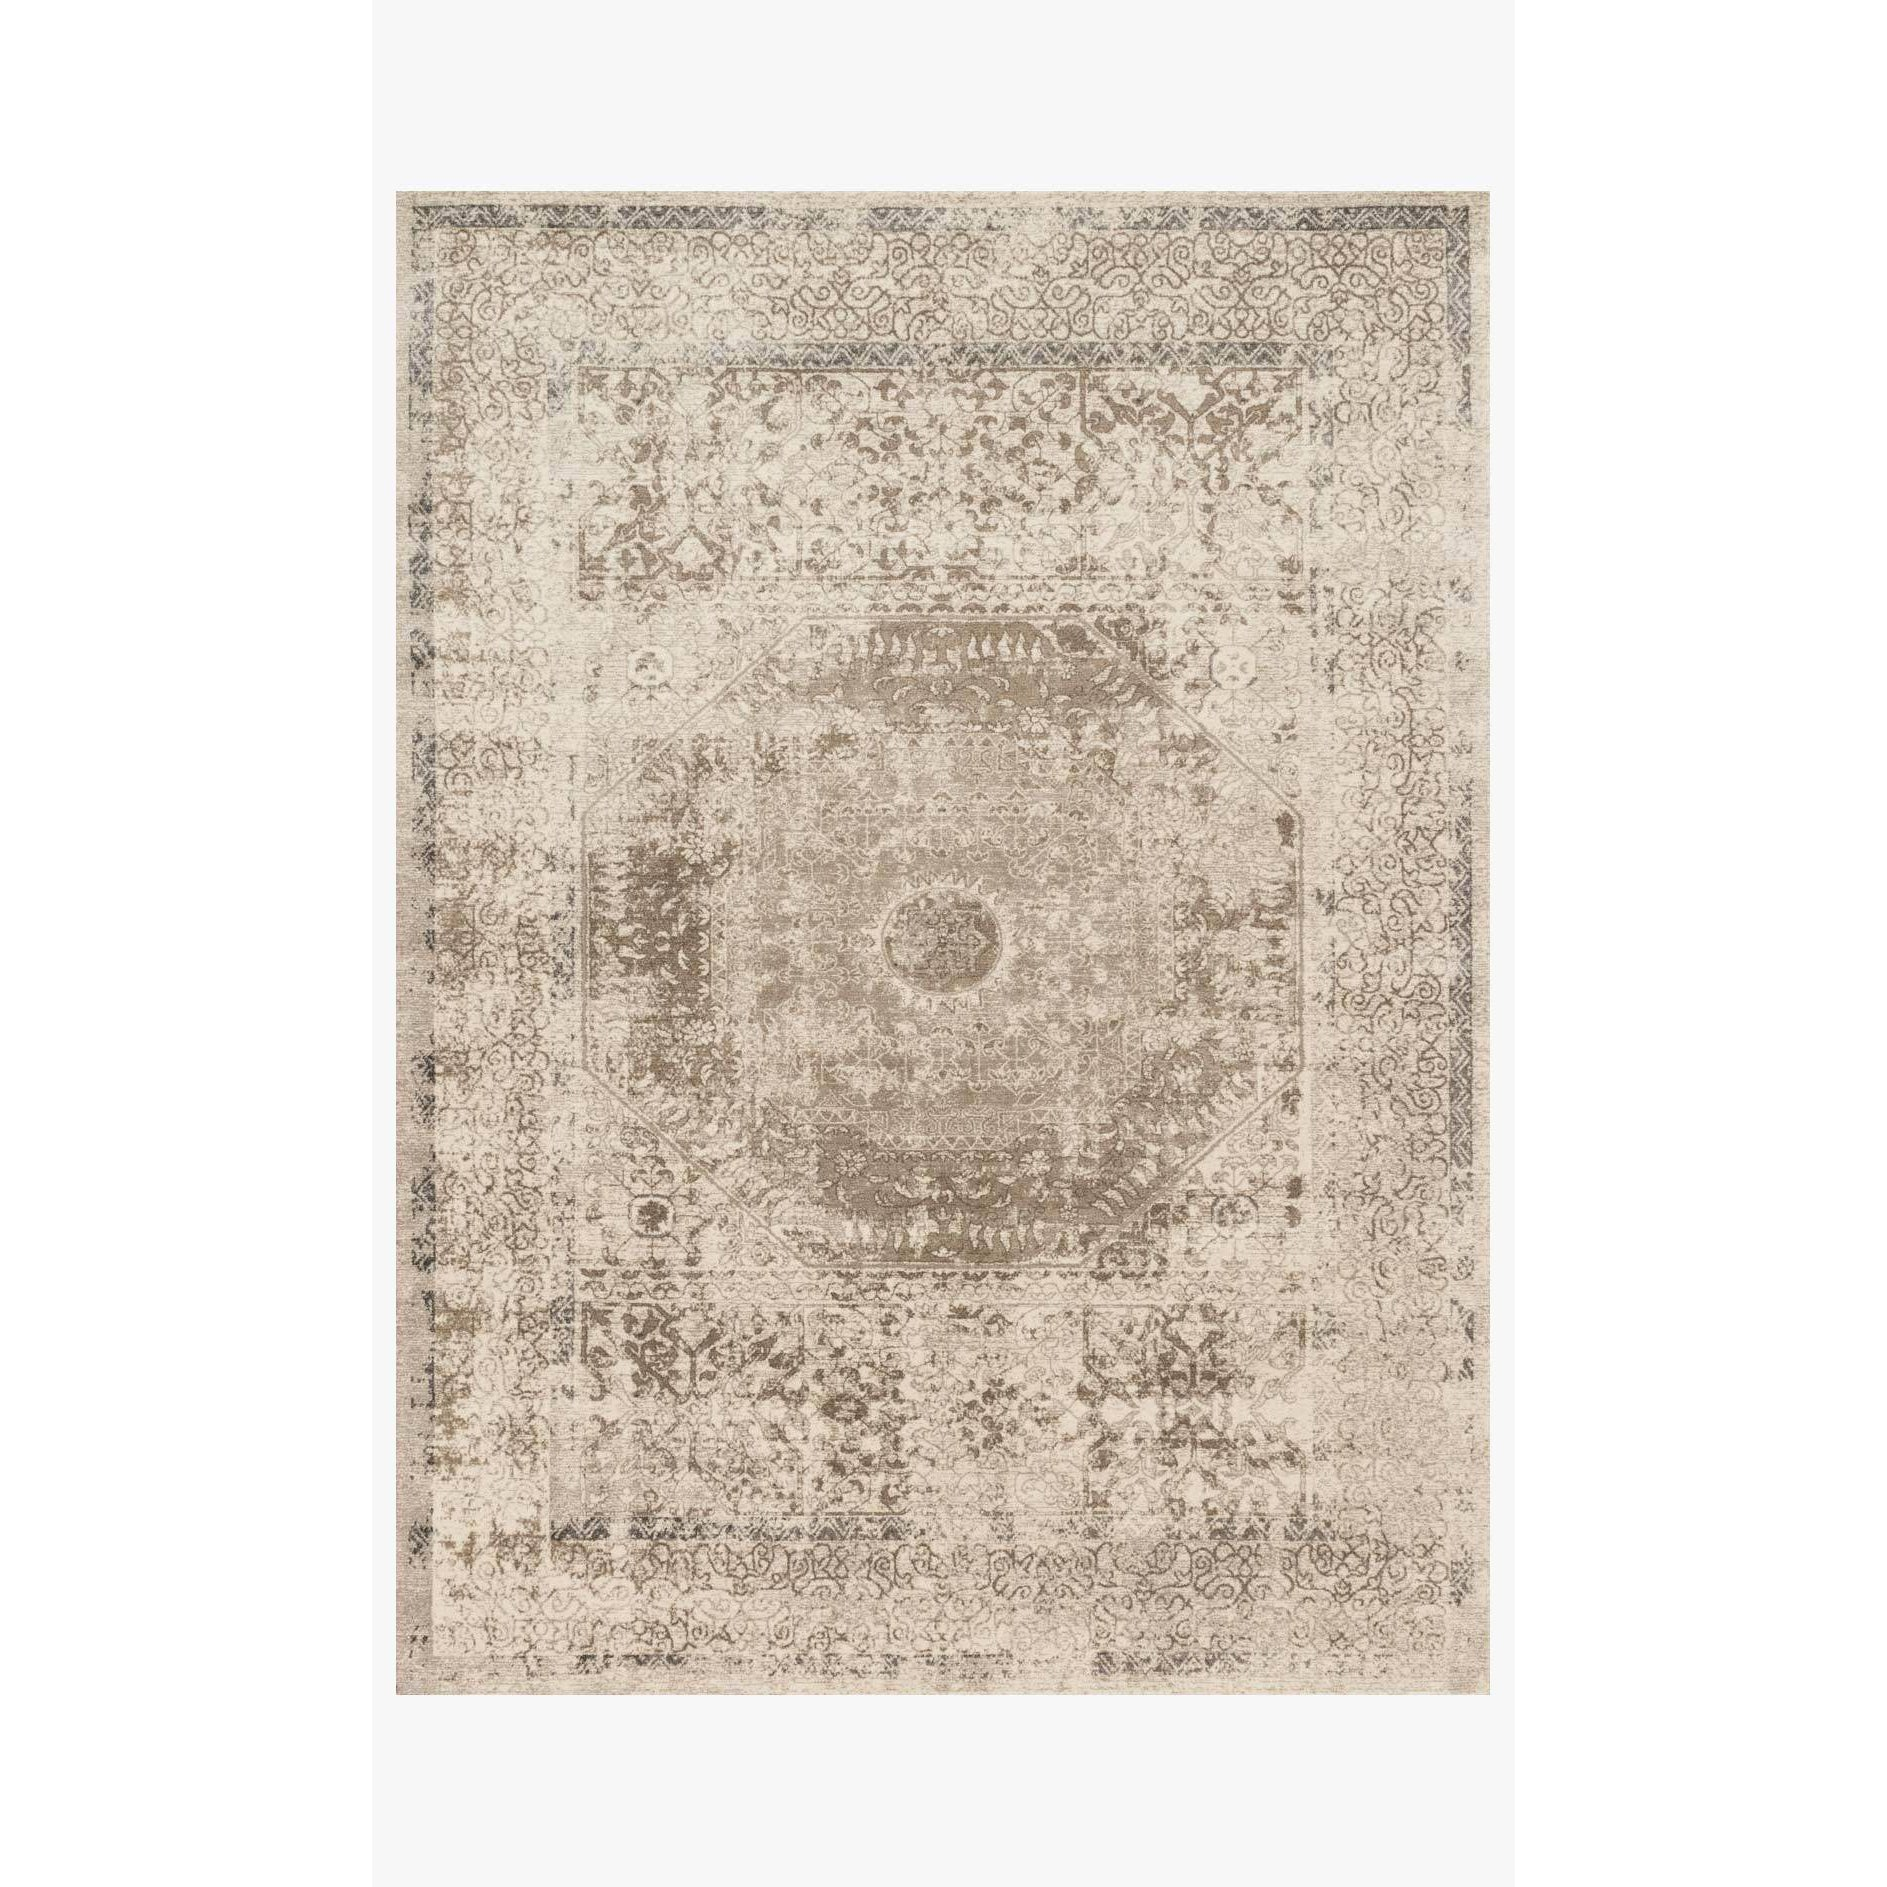 Century Rug by Loloi Rugs - CQ-01 - Taupe / Sand